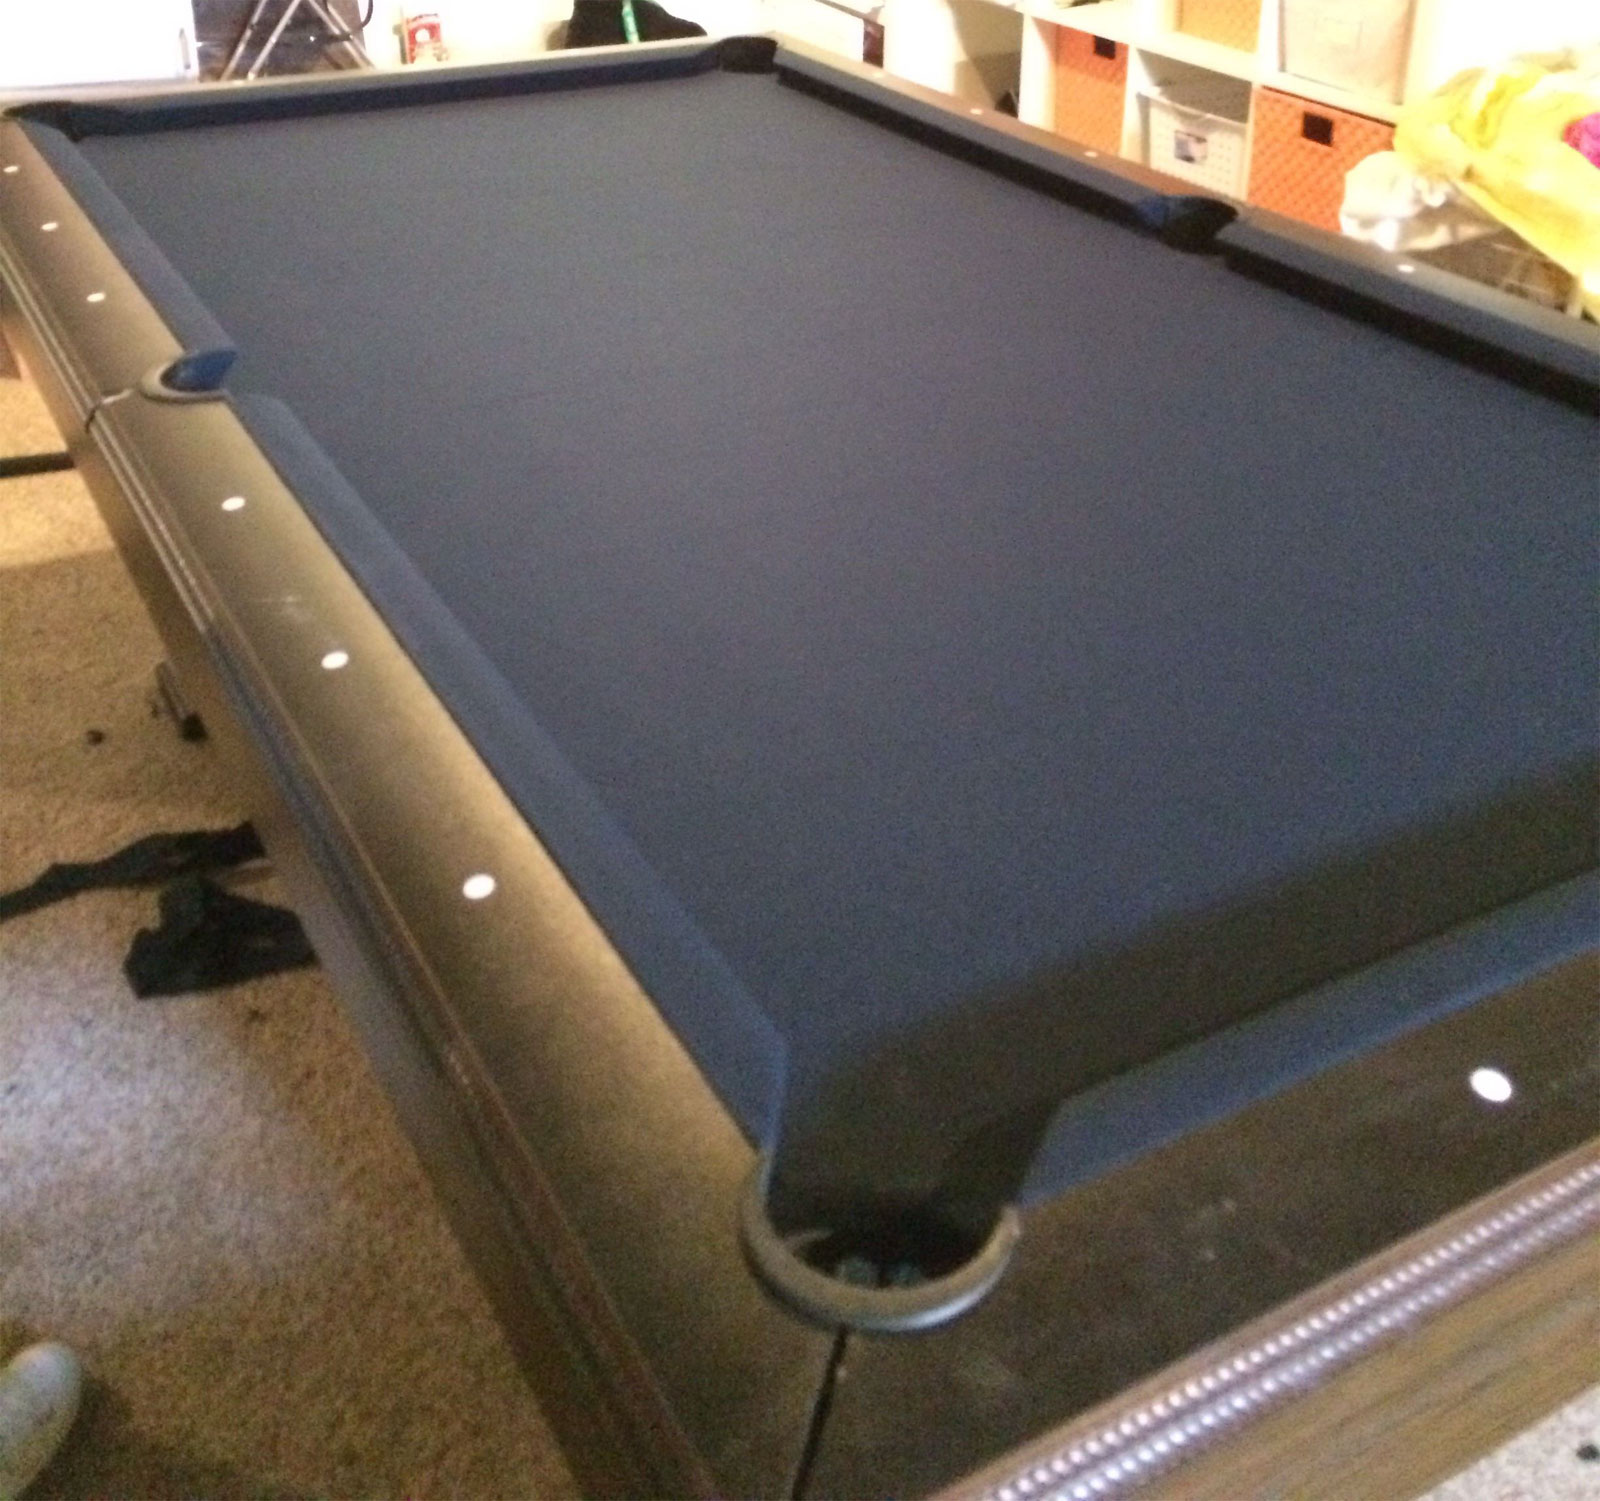 Montgomery Ward Pool Table Installing Cloth To Slate - How to install pool table felt